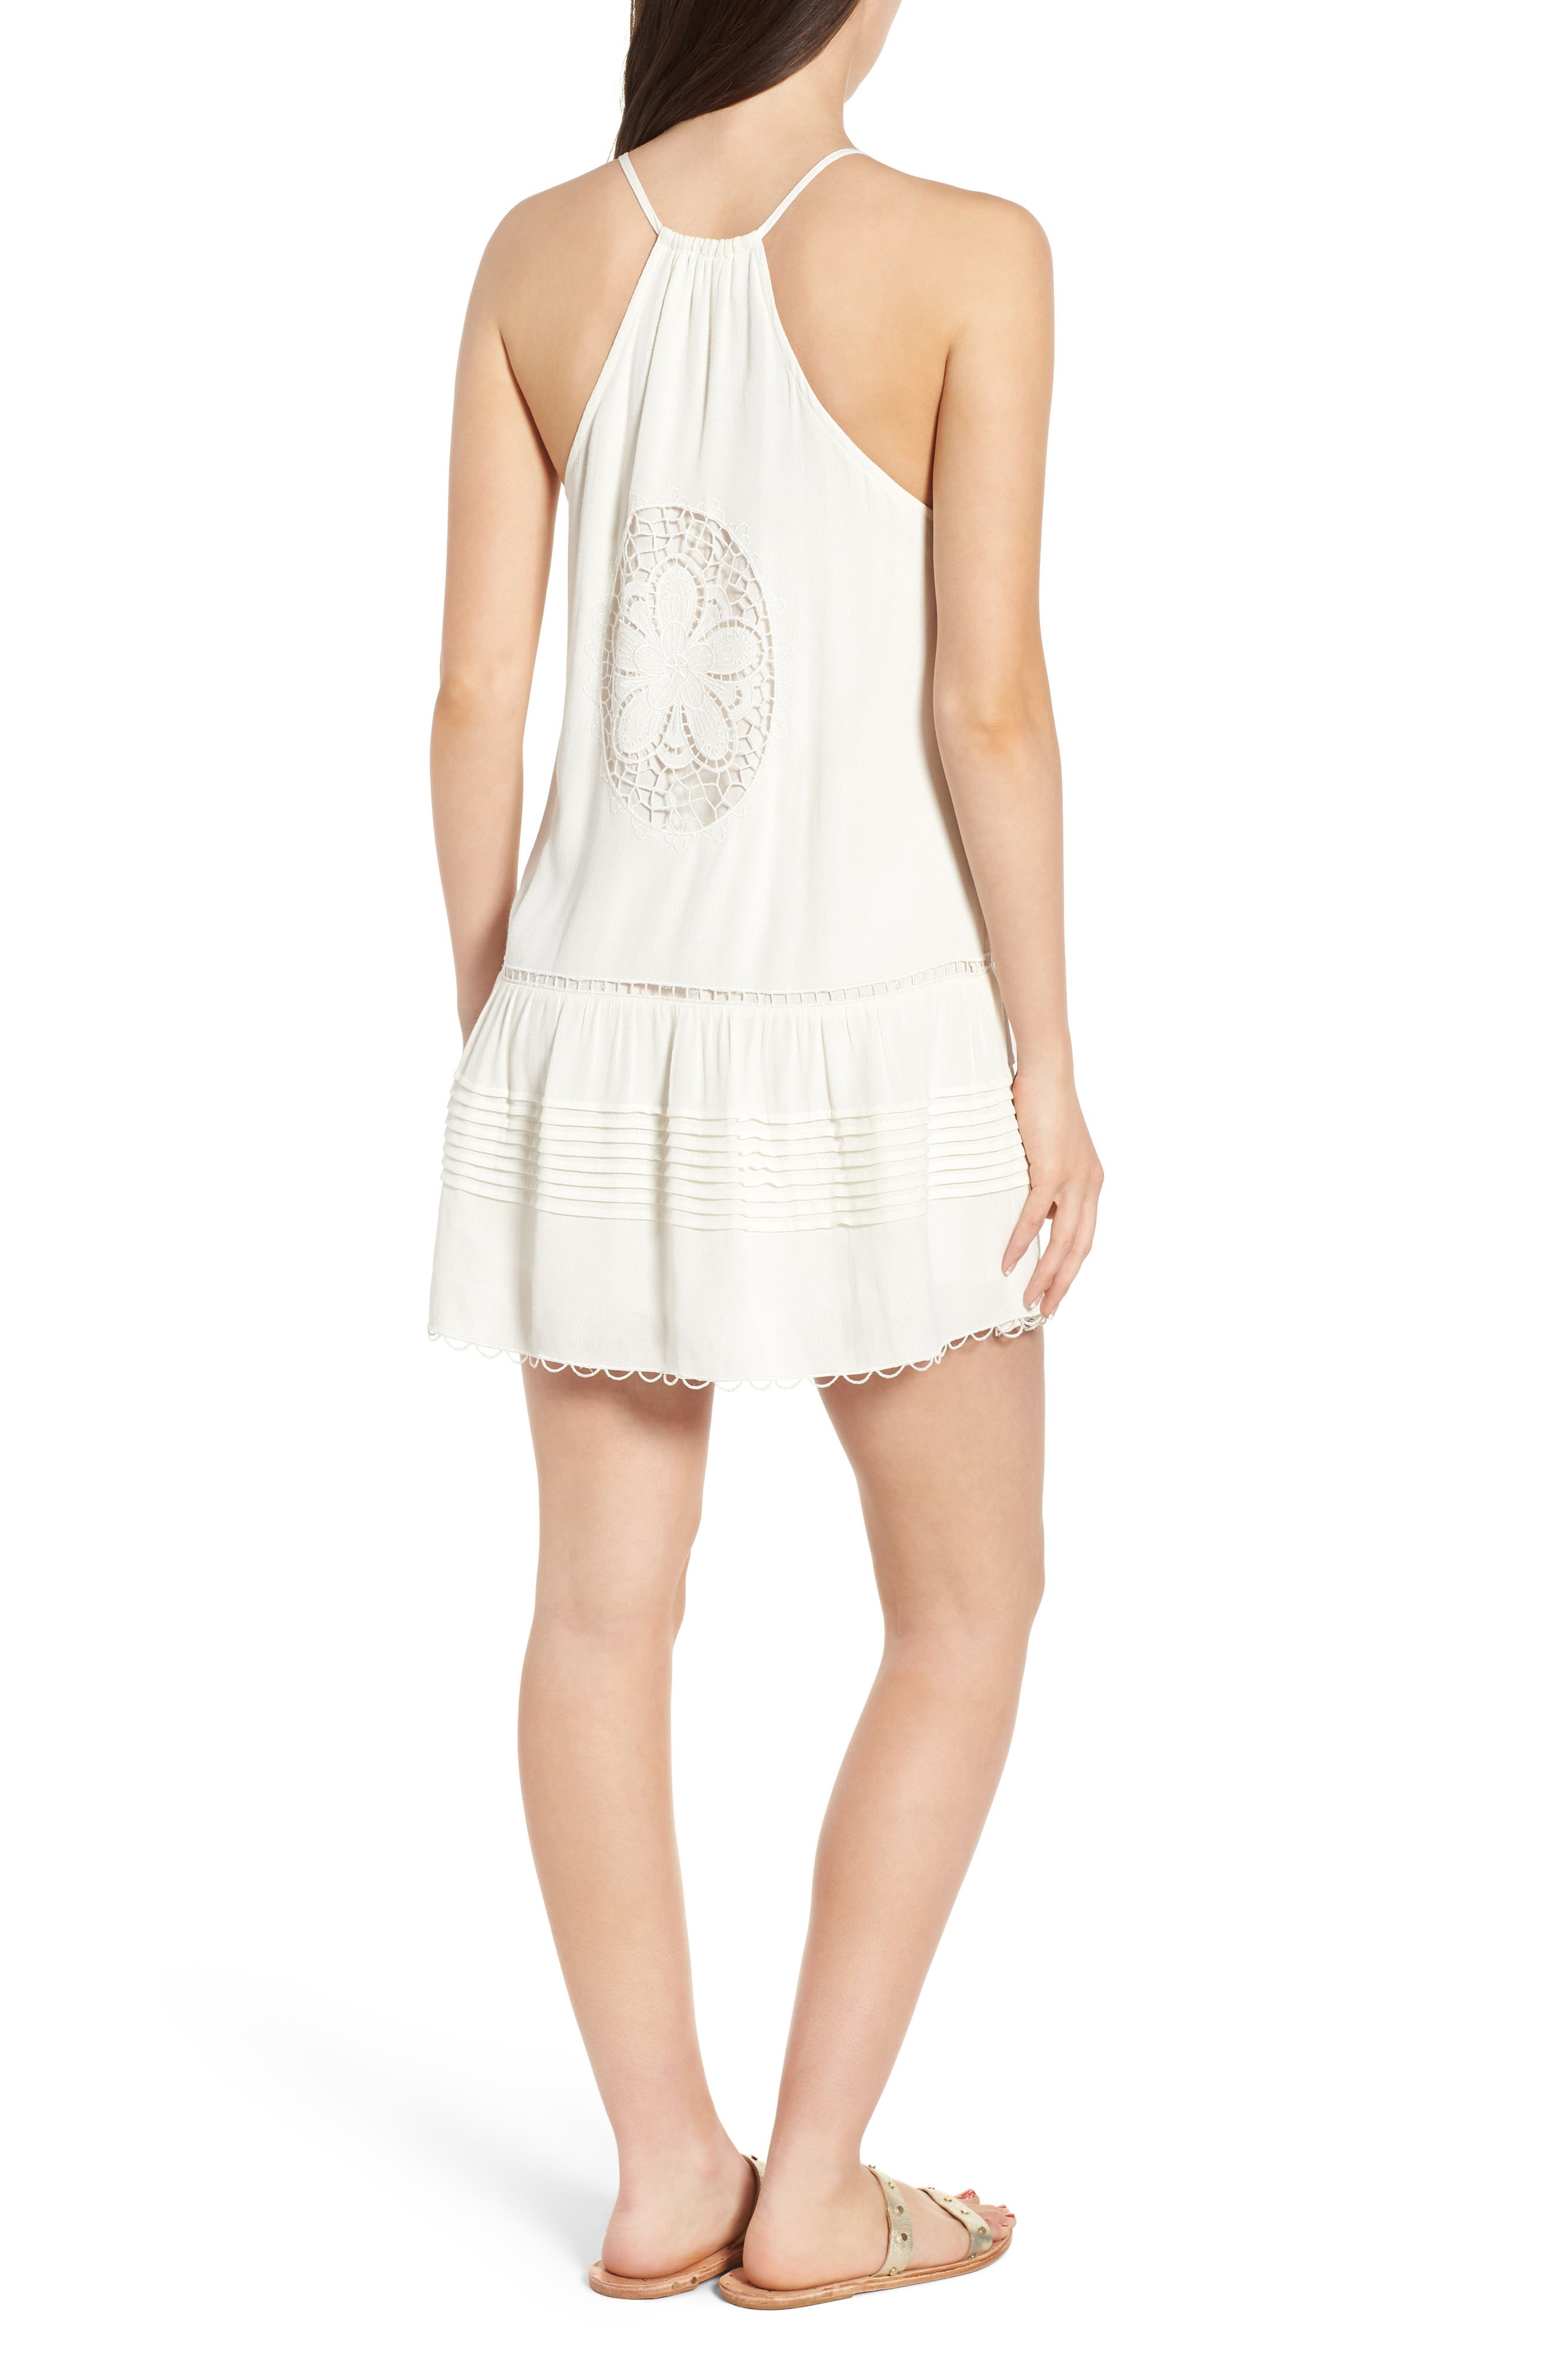 Sincerely Embroidered Minidress,                             Alternate thumbnail 2, color,                             Ivory